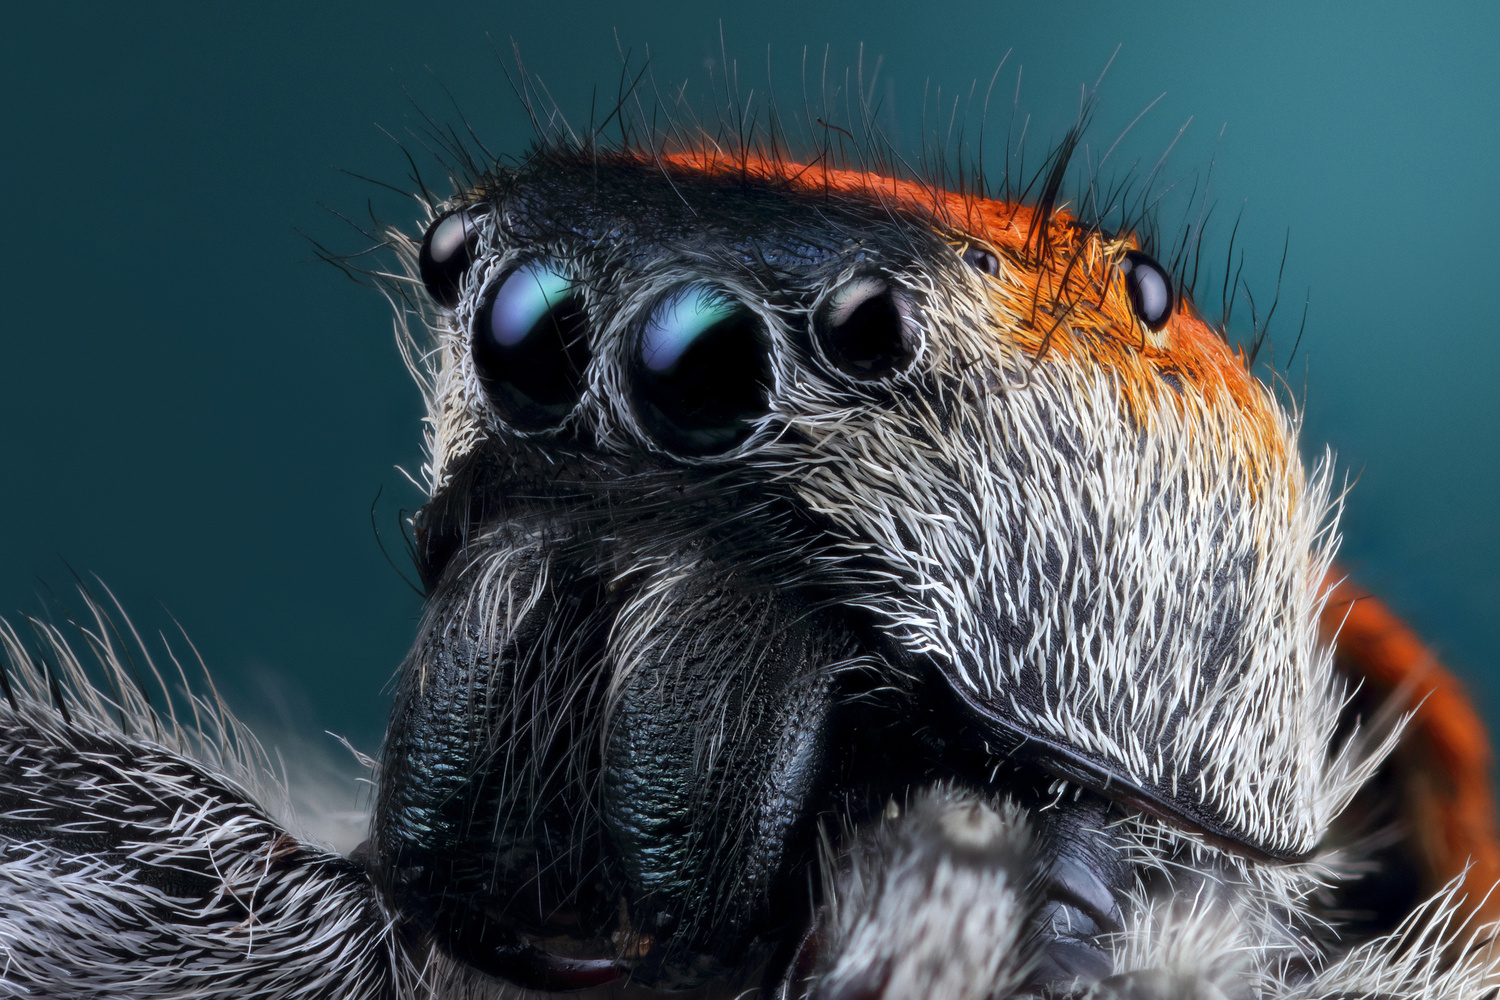 Male Phidippus Whitmani by Andres Moline